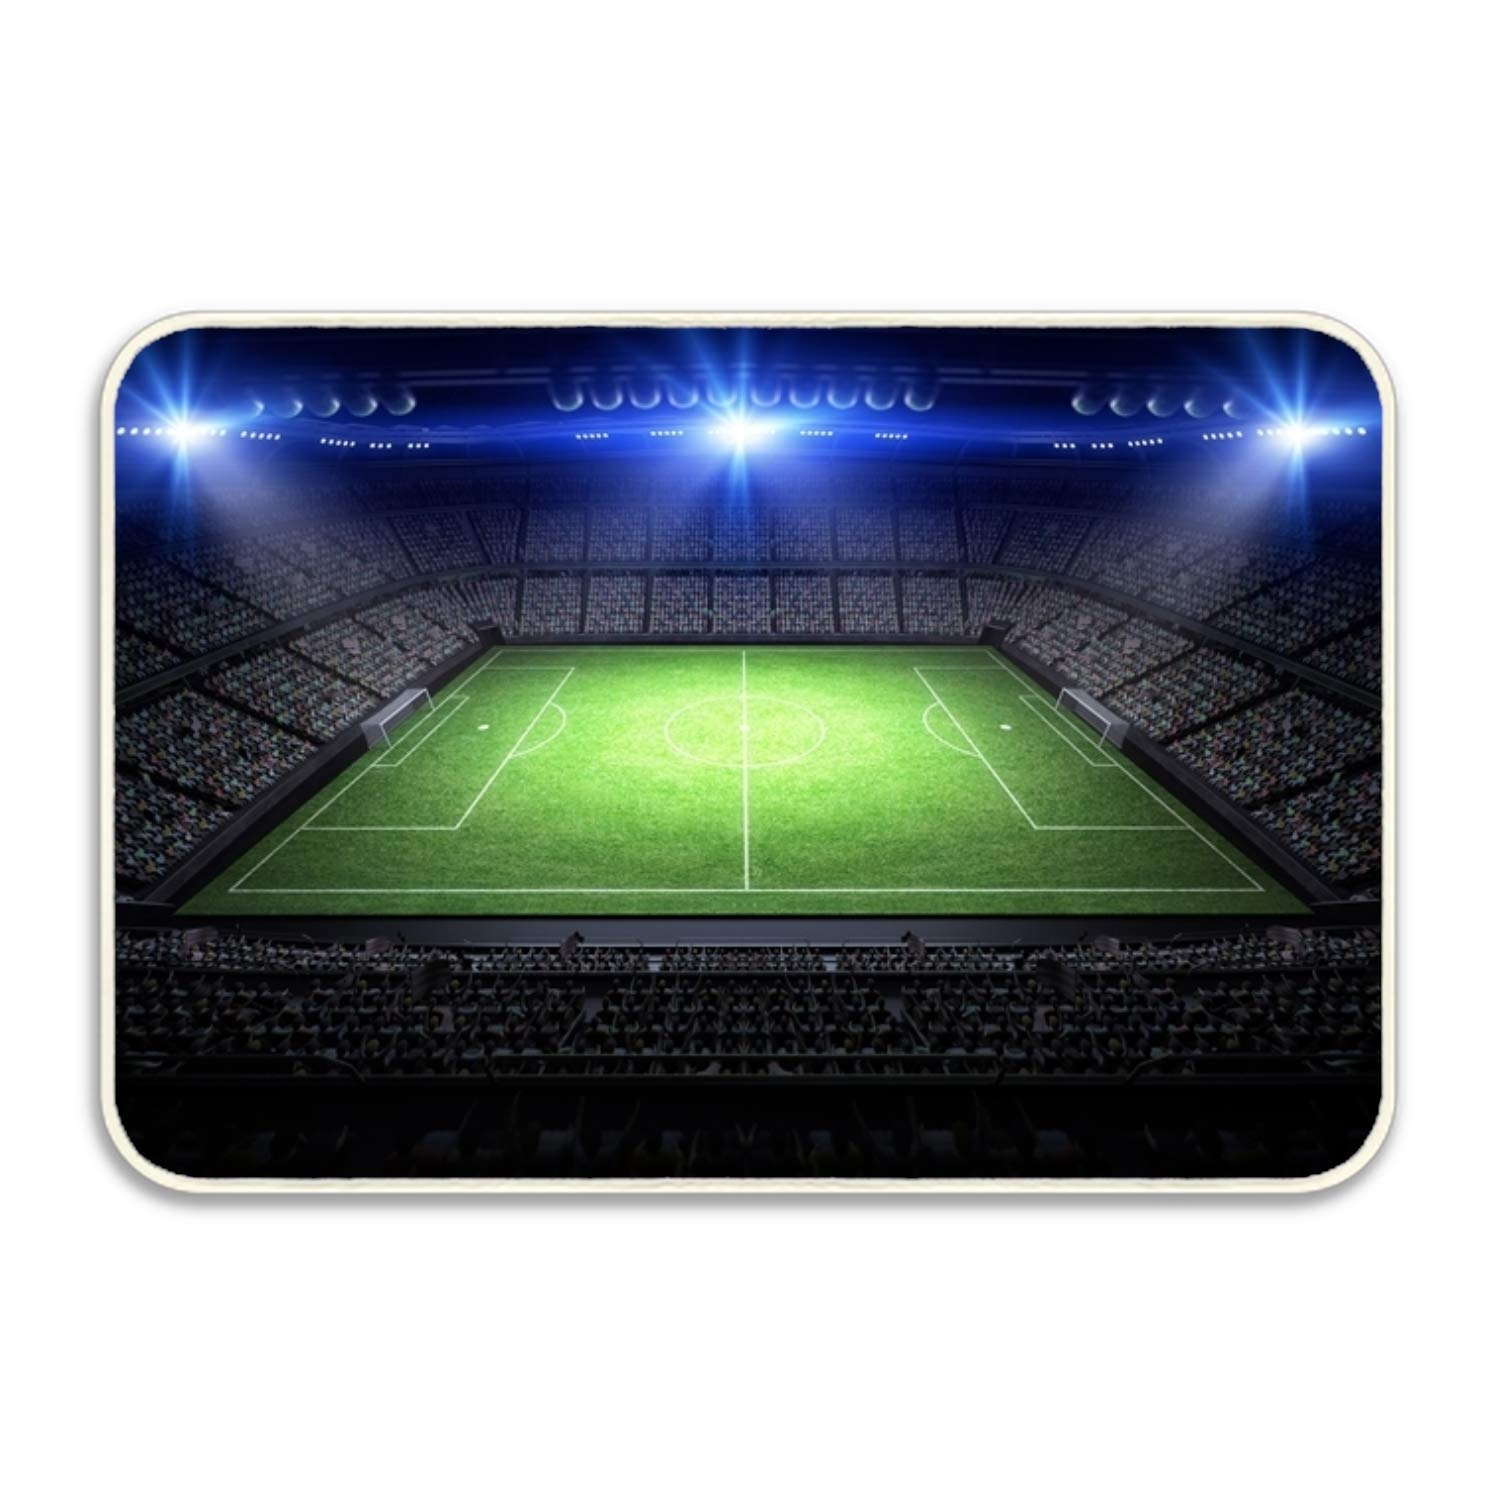 Amazon.com : PlayA Football Site Fancy Doormat Accent Non-Slip Rug Office : Garden & Outdoor